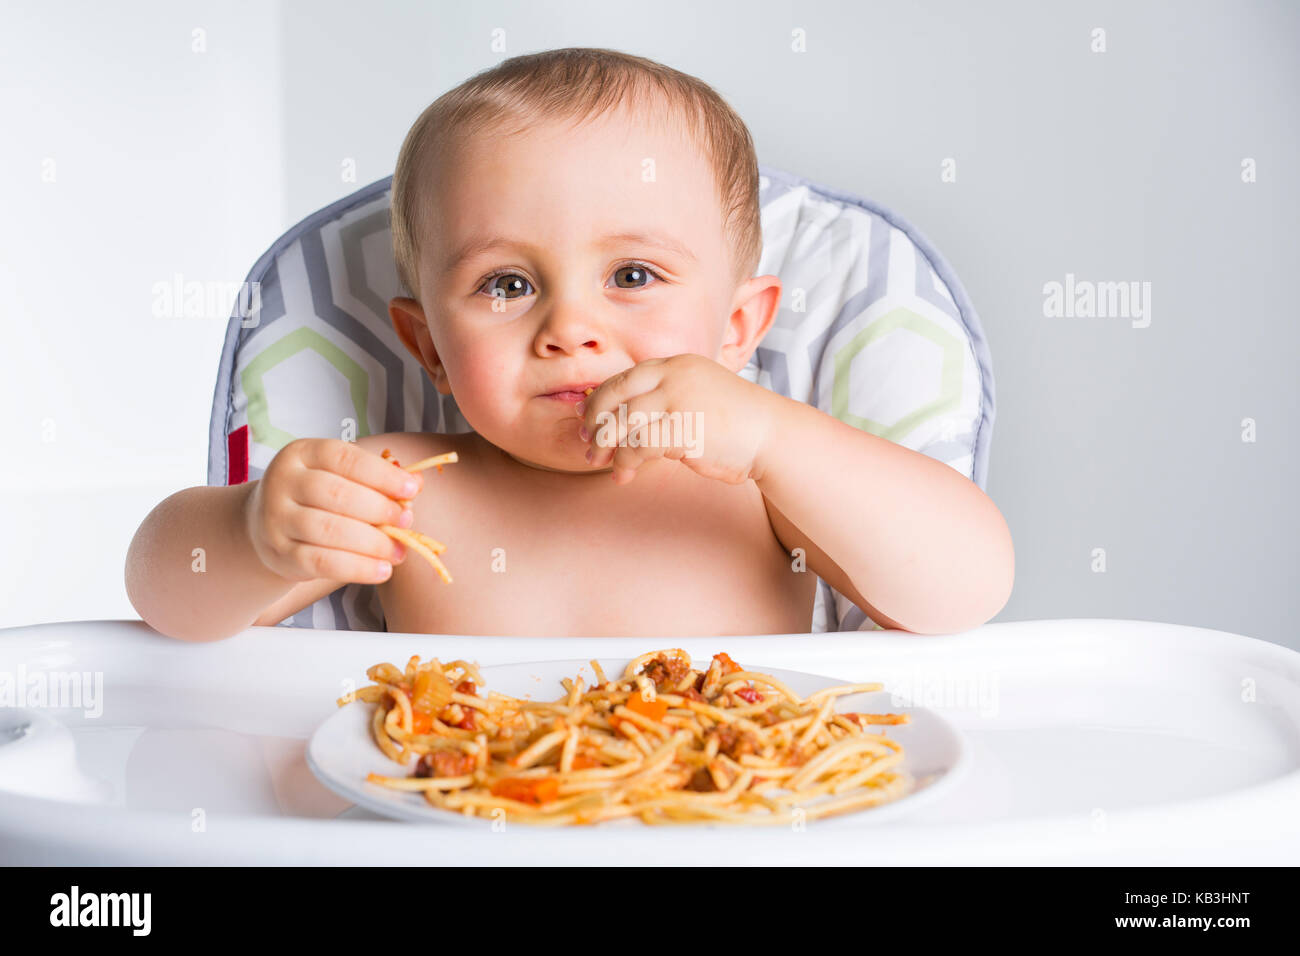 baby essen ihr abendessen und ein chaos stockfoto bild 161734324 alamy. Black Bedroom Furniture Sets. Home Design Ideas